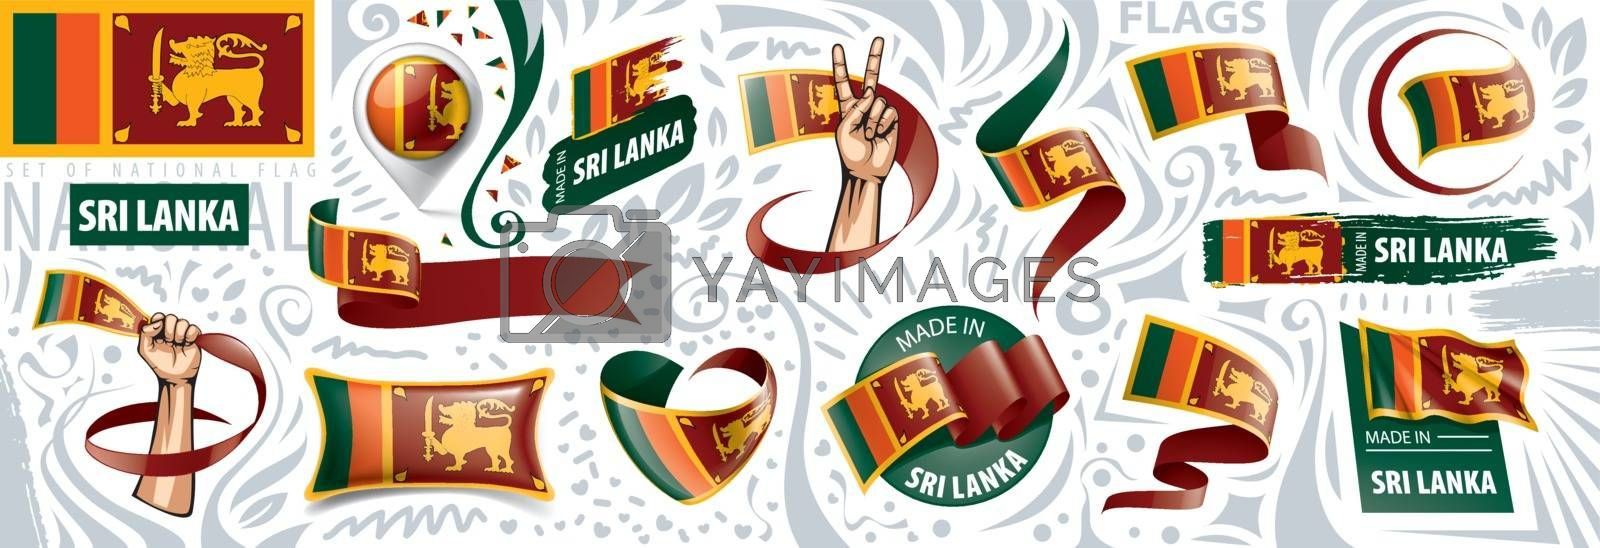 Vector set of the national flag of Sri Lanka in various creative designs.